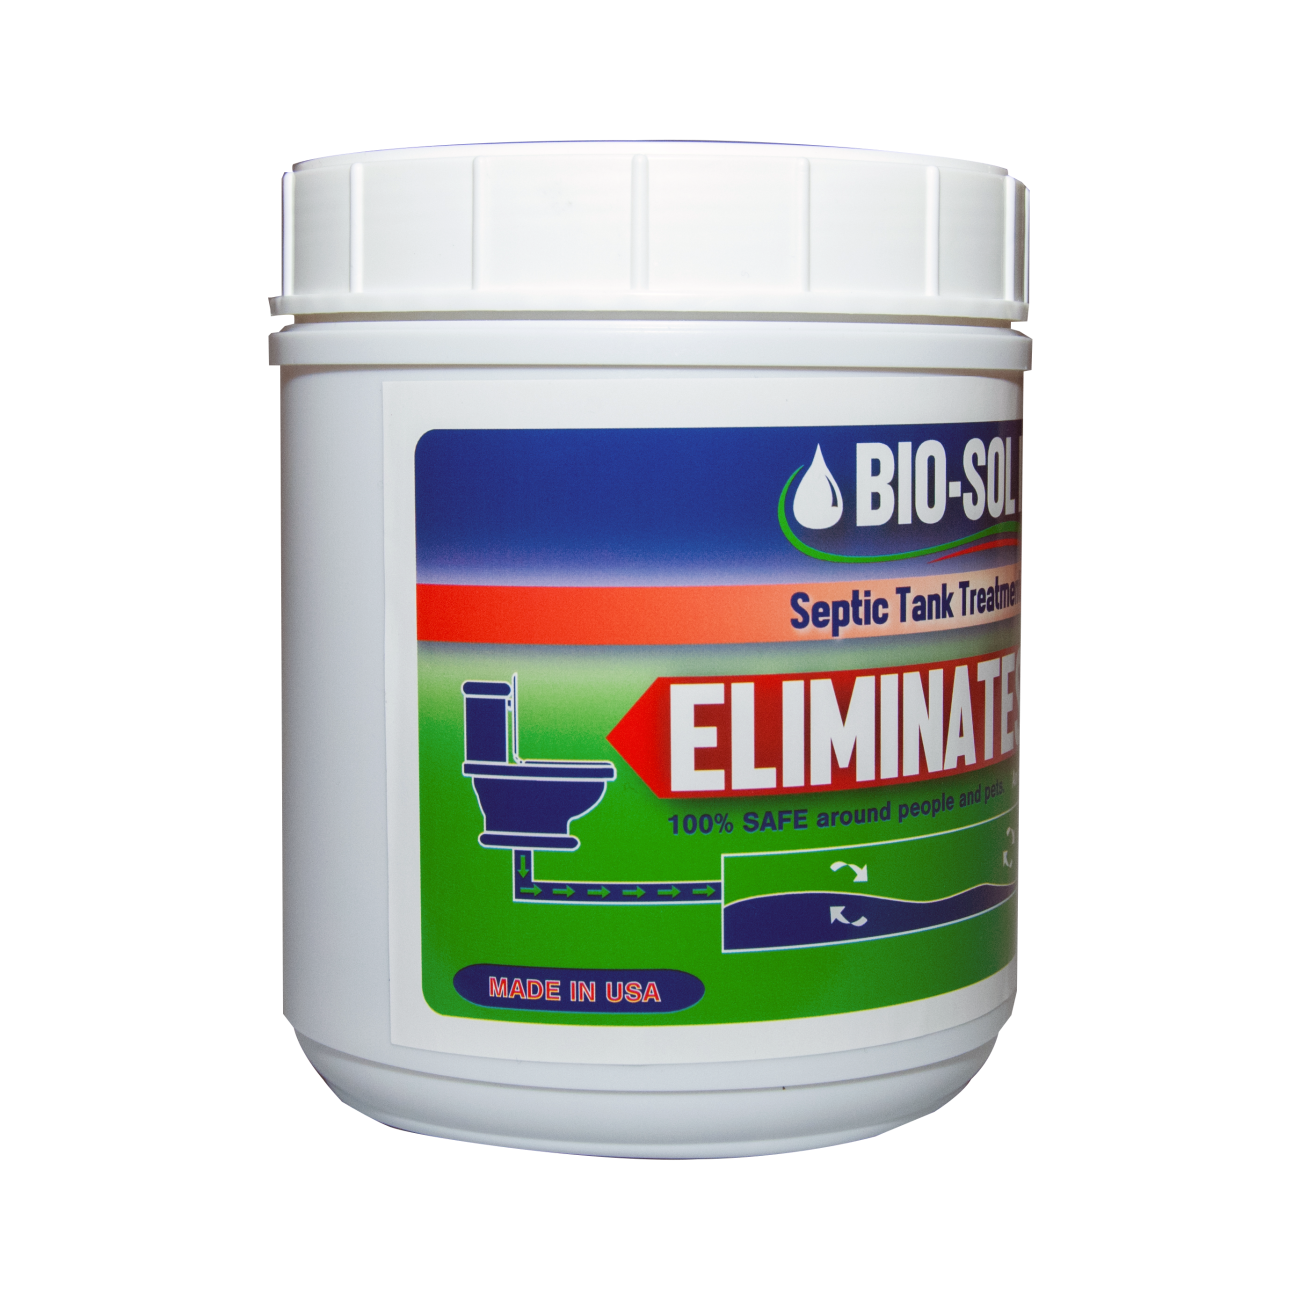 Septic Tank Treatment Tablets For Sale Eliminate Odors